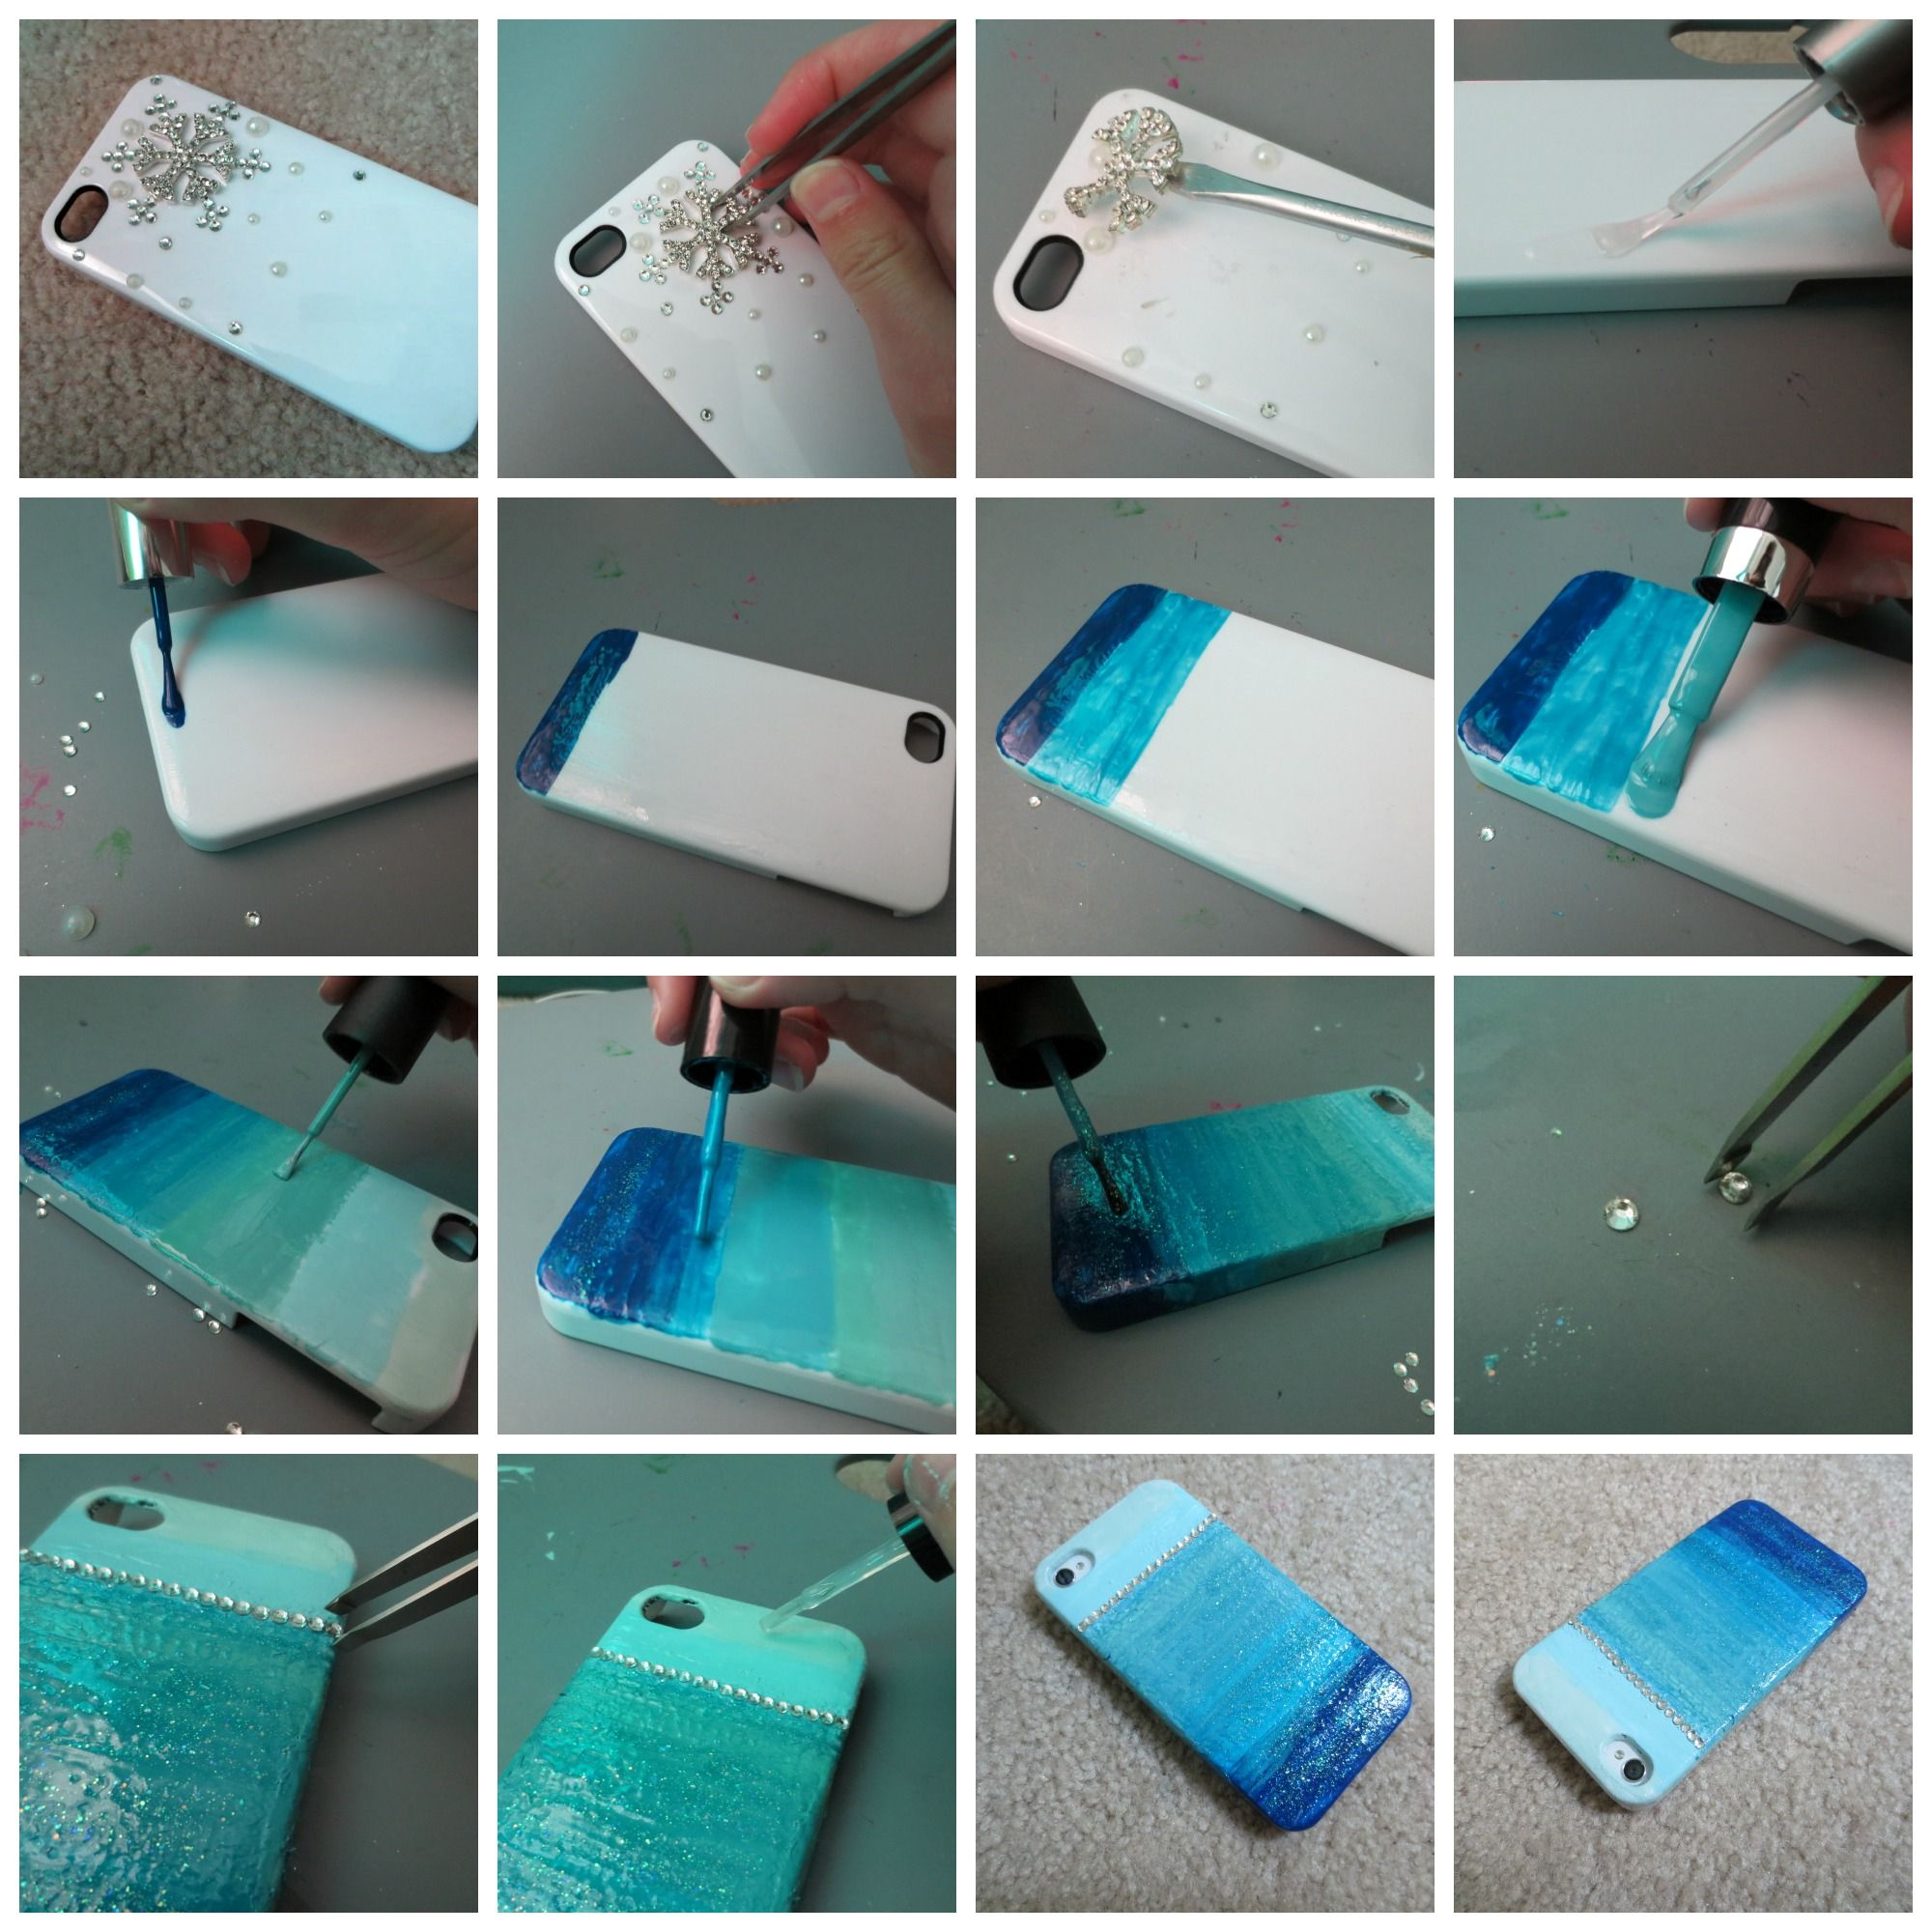 Use Nail Polish To Make Your Own Phone Case | Handyhüllen, Kreativ ...